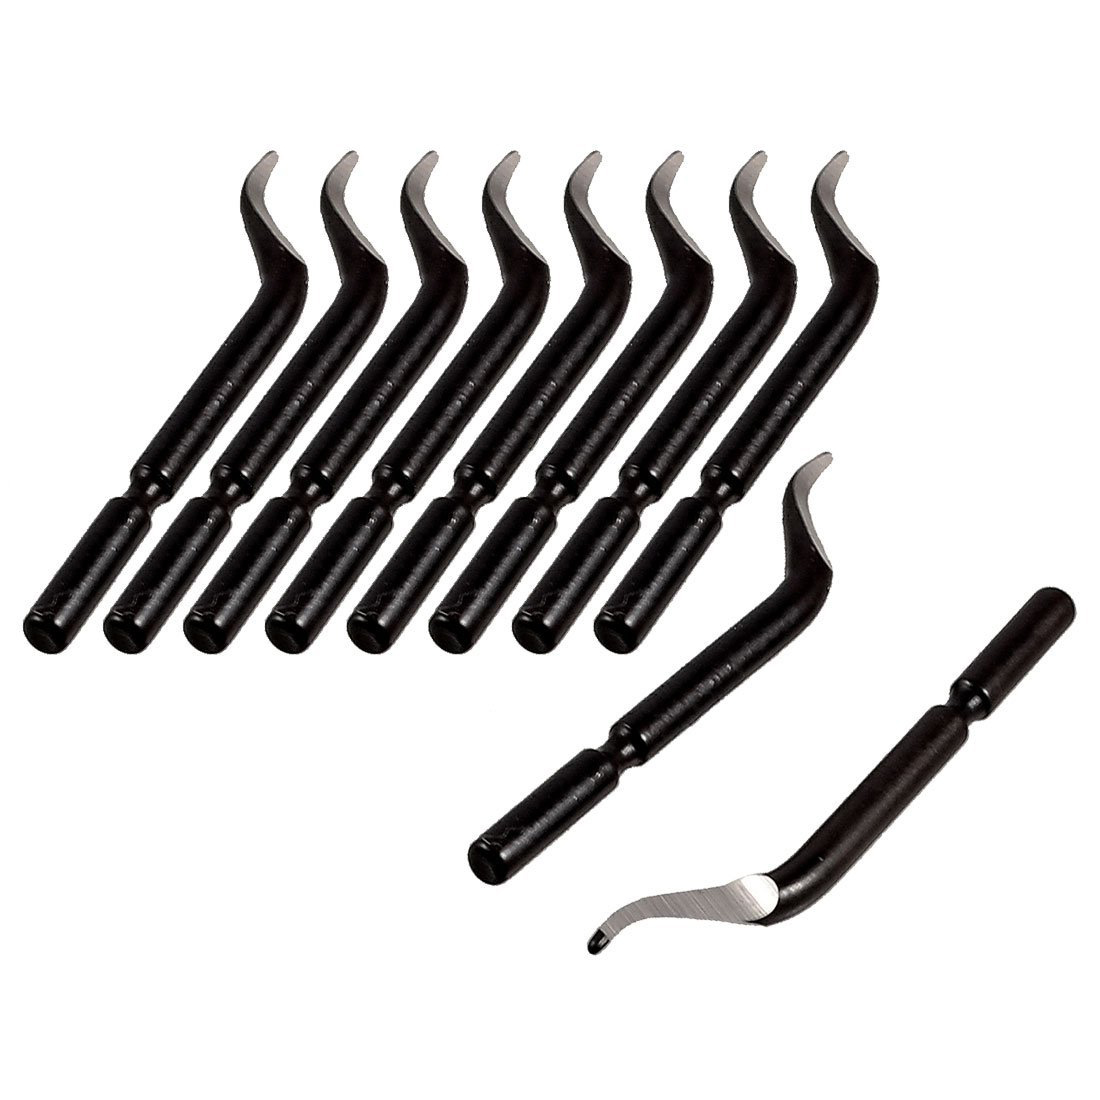 THGS-Replacement Deburred Tool BK3010 S150 Deburring Blades 10 PcsTHGS-Replacement Deburred Tool BK3010 S150 Deburring Blades 10 Pcs